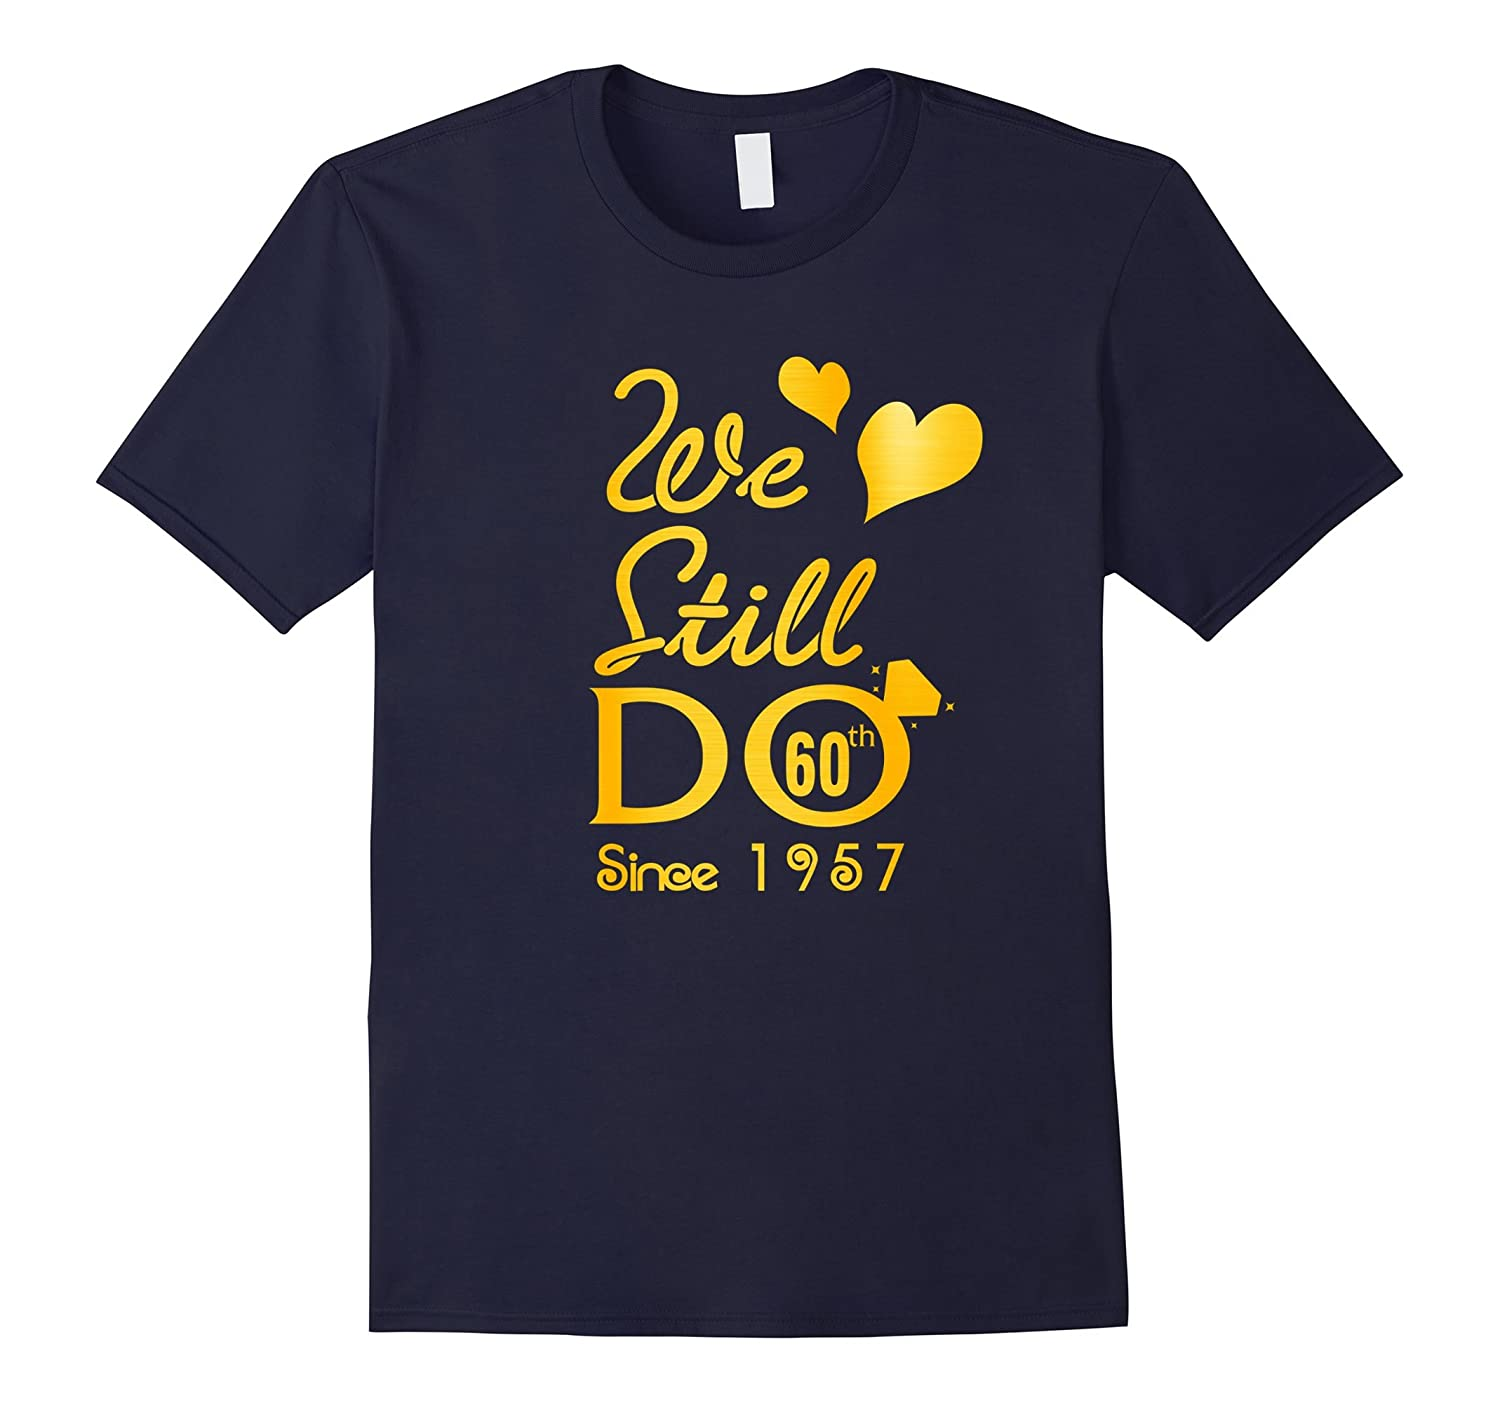 60th Wedding Anniversary Tshirt We Still Do Gifts for Couple-CL